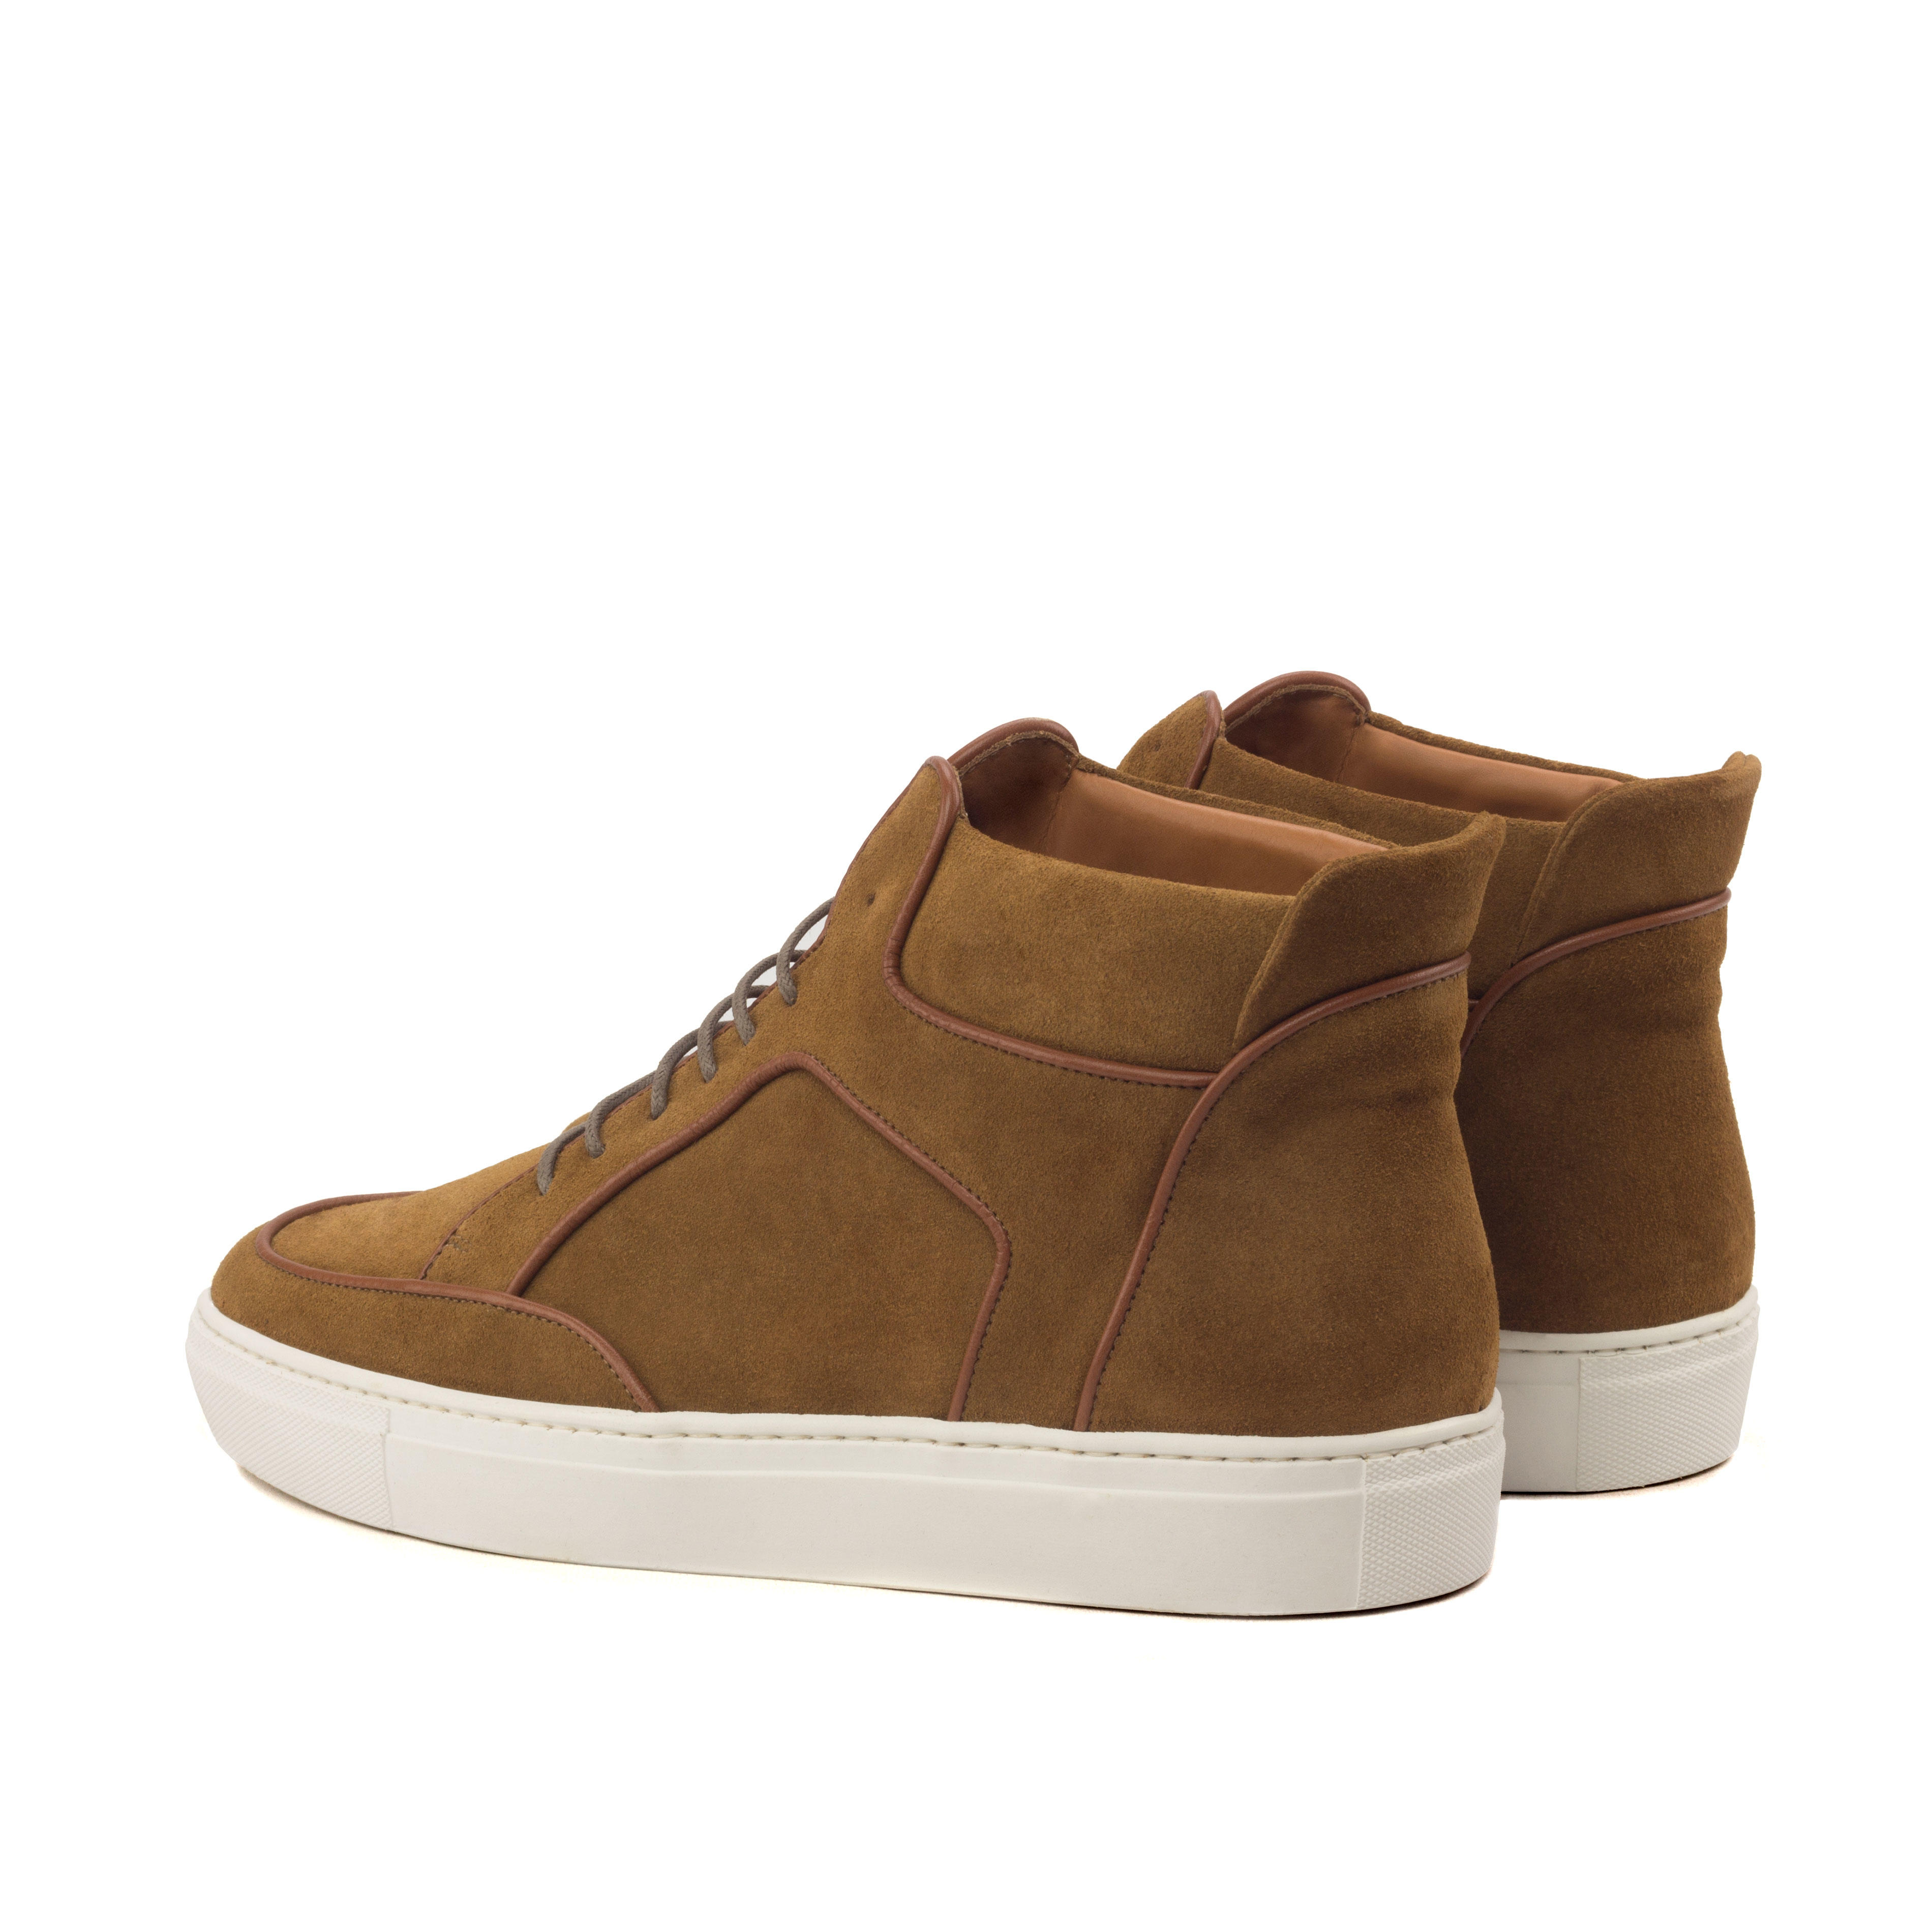 Manor of London 'The Hamilton' Camel Suede High-Top Trainer Luxury Custom Initials Monogrammed Back Side View